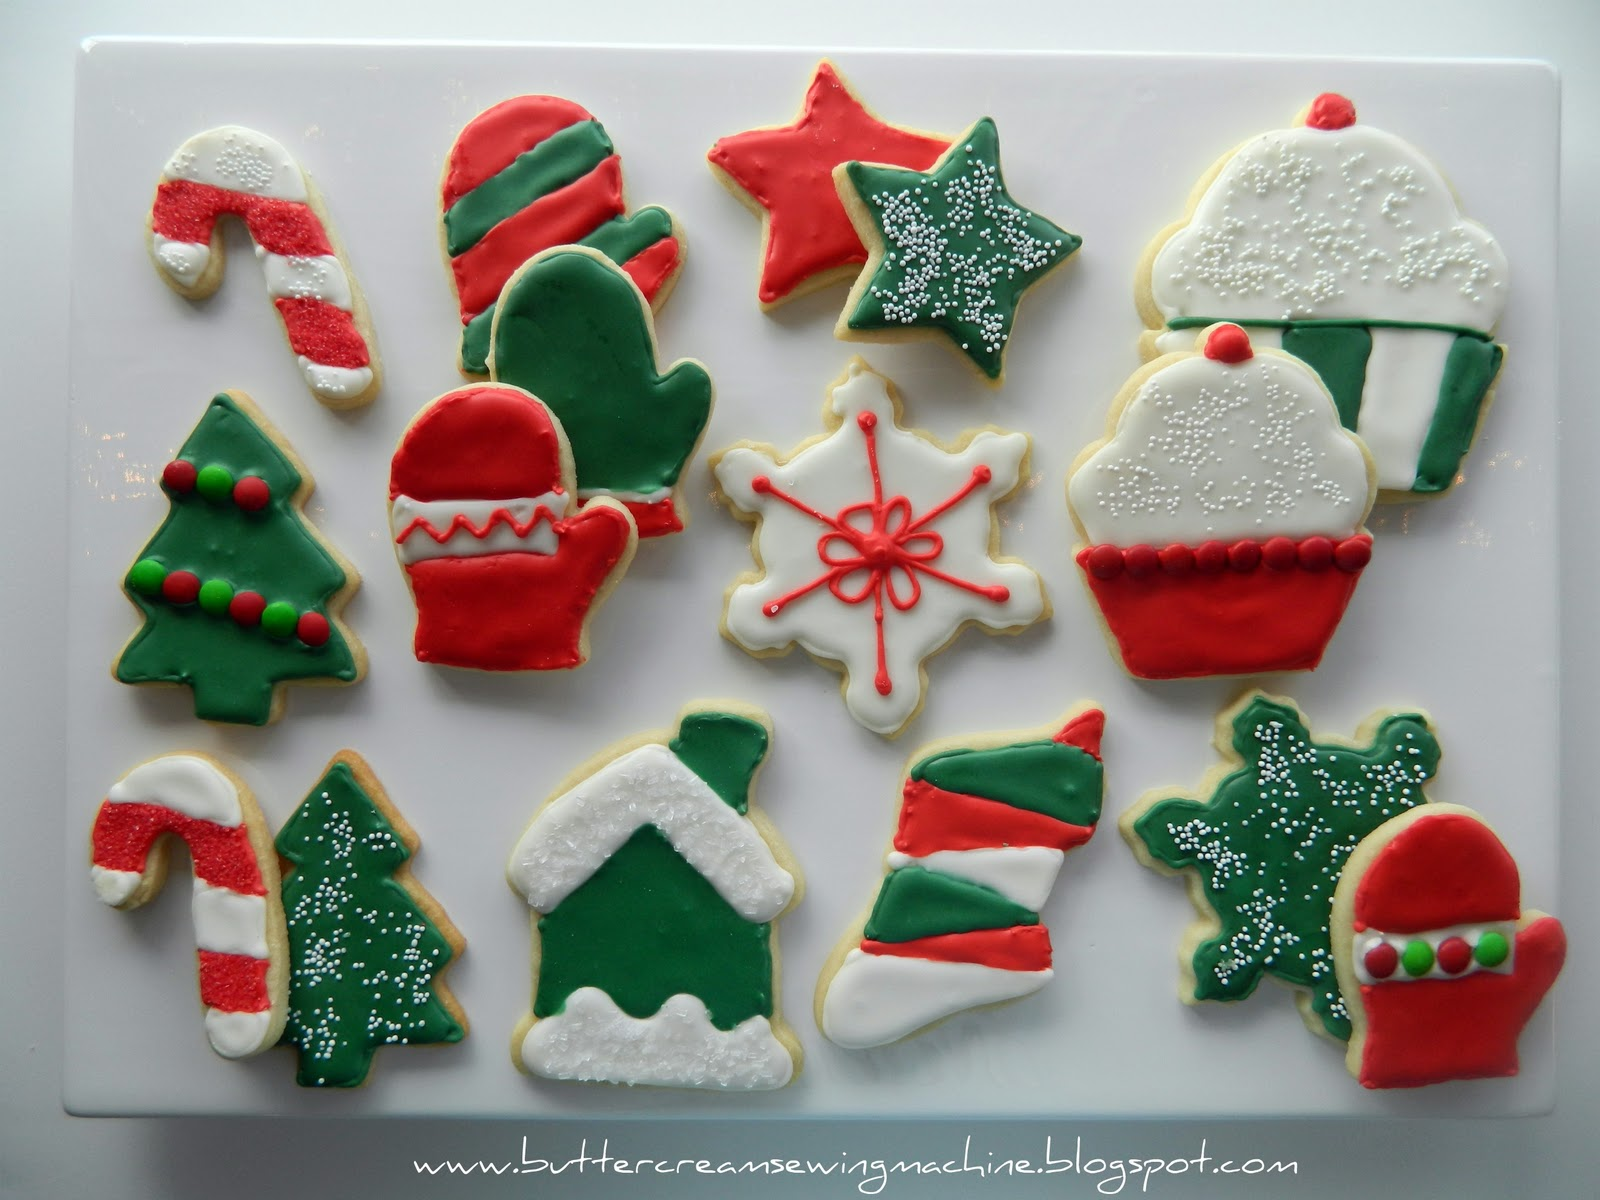 buttercream and a sewing machine decorating christmas cookies - Christmas Decorations To Make With Sewing Machine